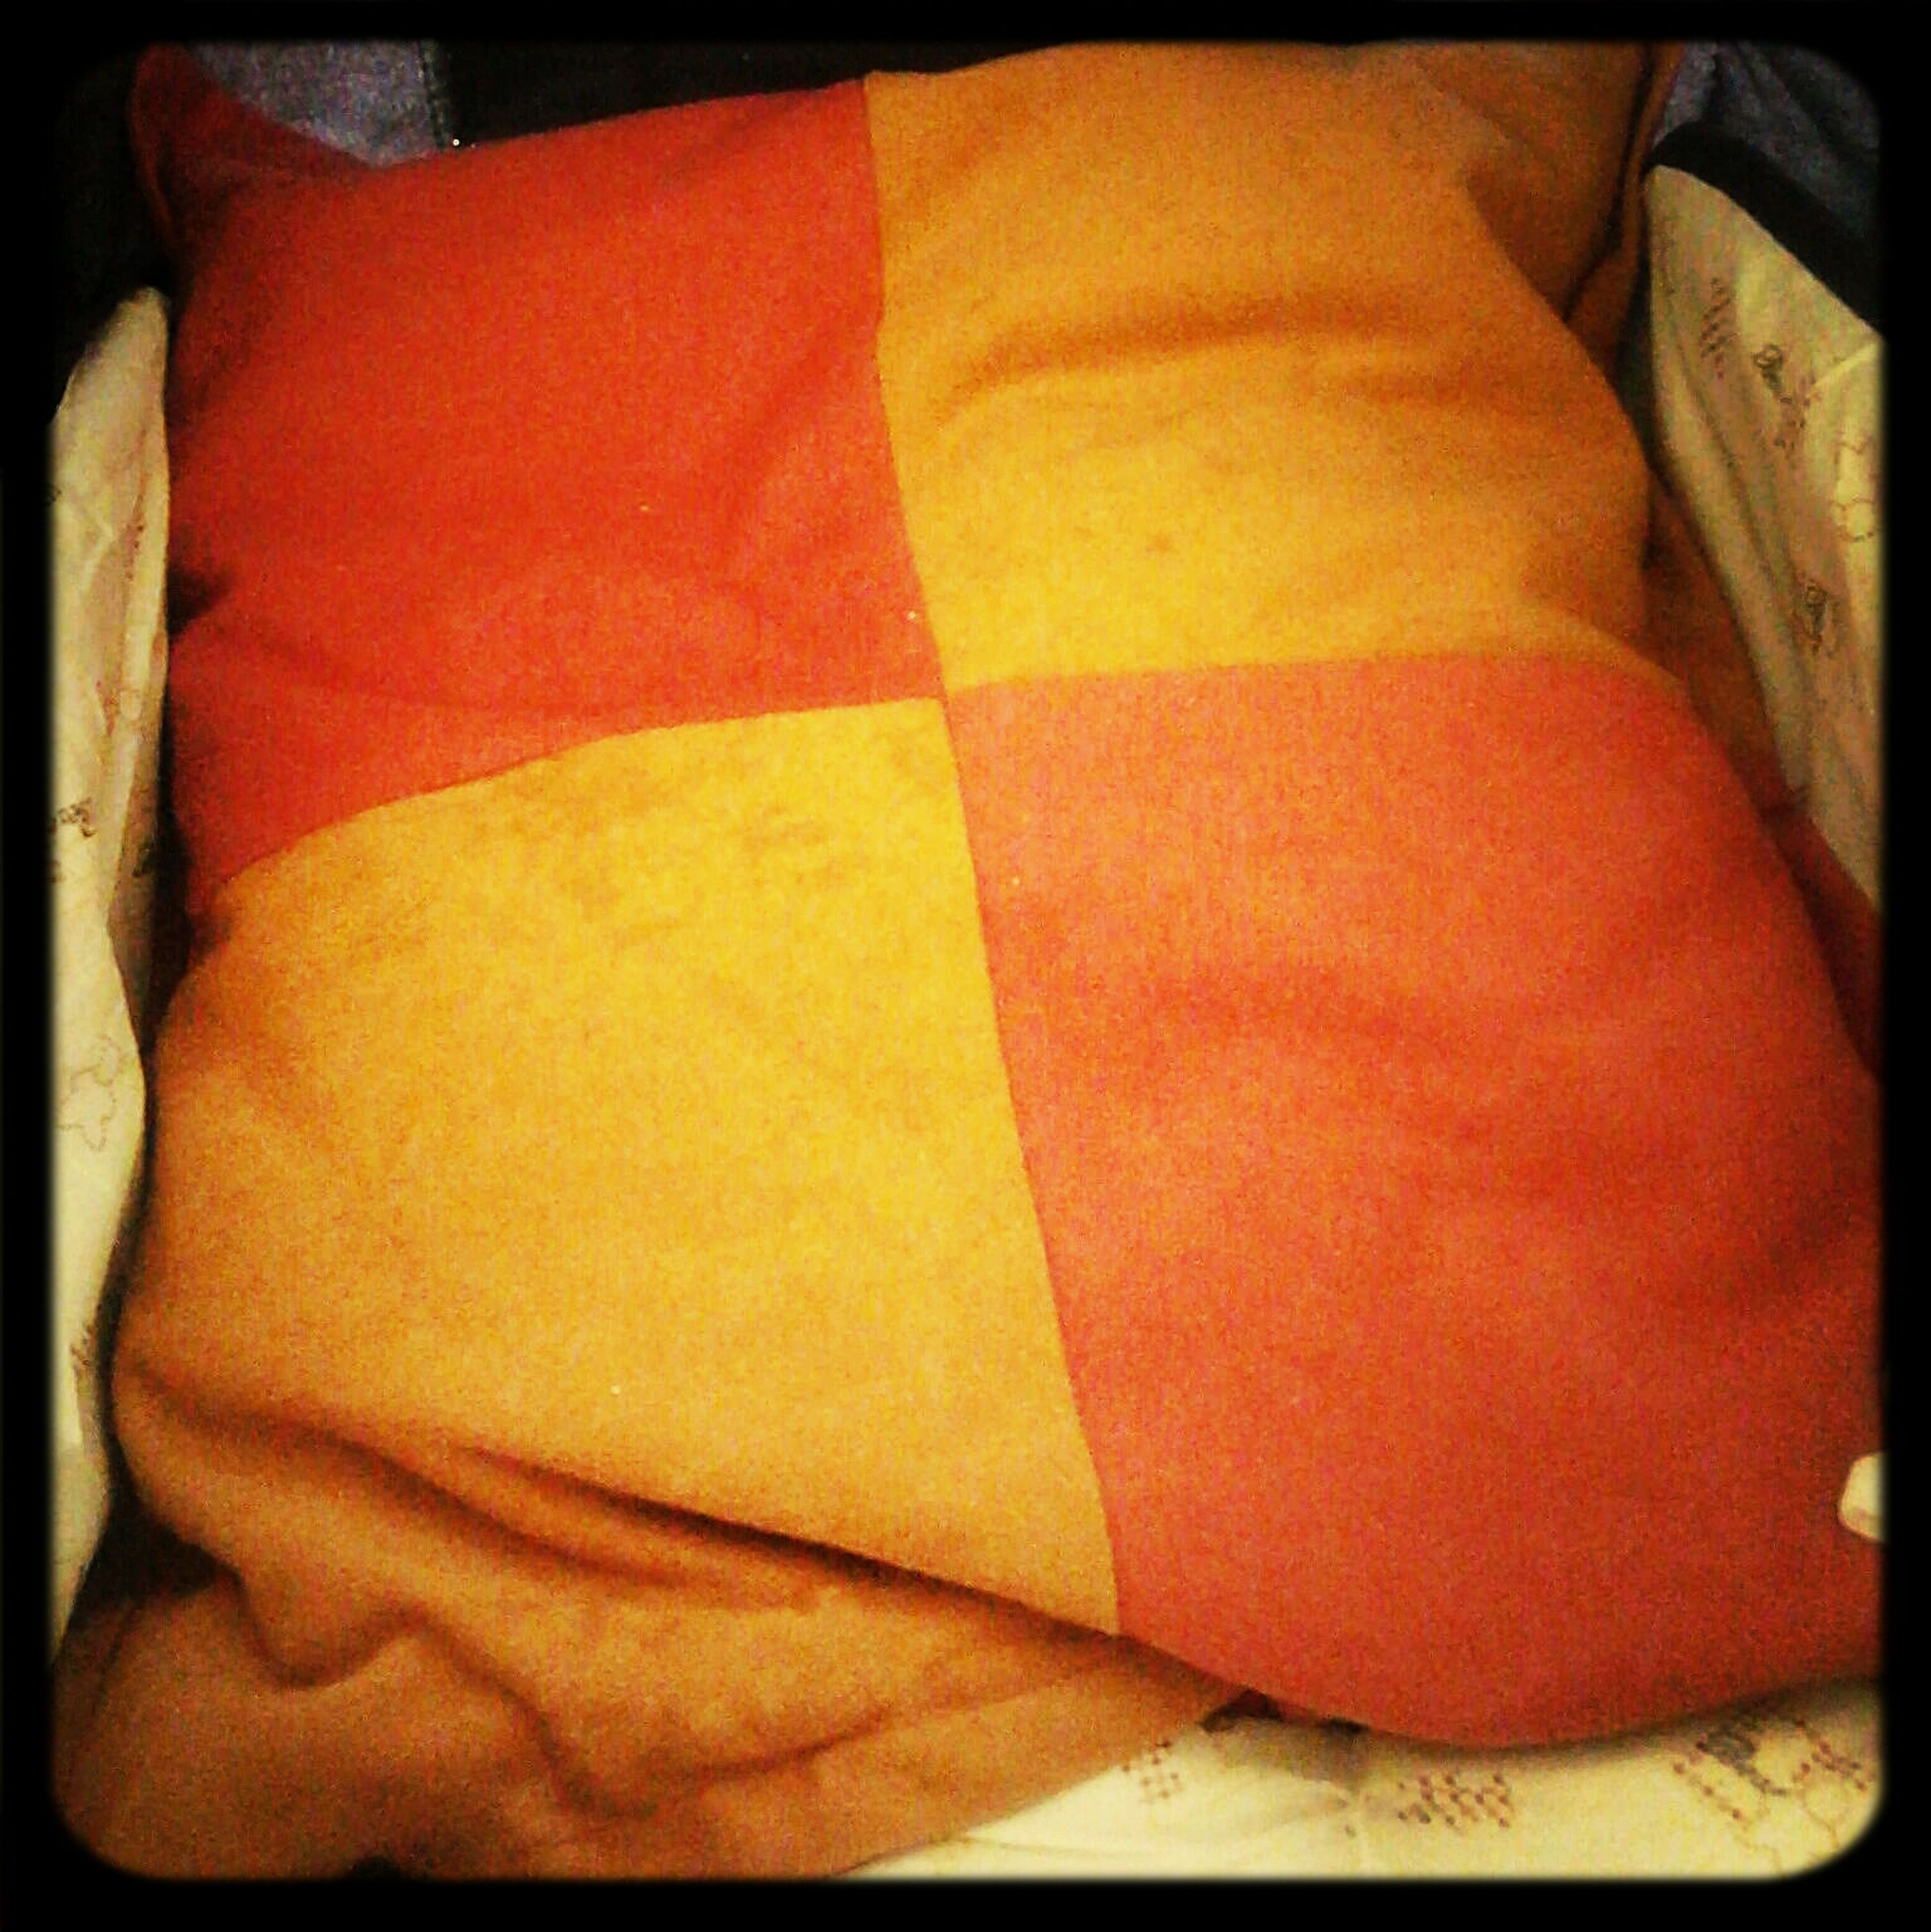 transfer print, indoors, auto post production filter, close-up, red, high angle view, bed, textile, relaxation, no people, orange color, fabric, full frame, blanket, day, stack, sofa, backgrounds, pattern, sunlight